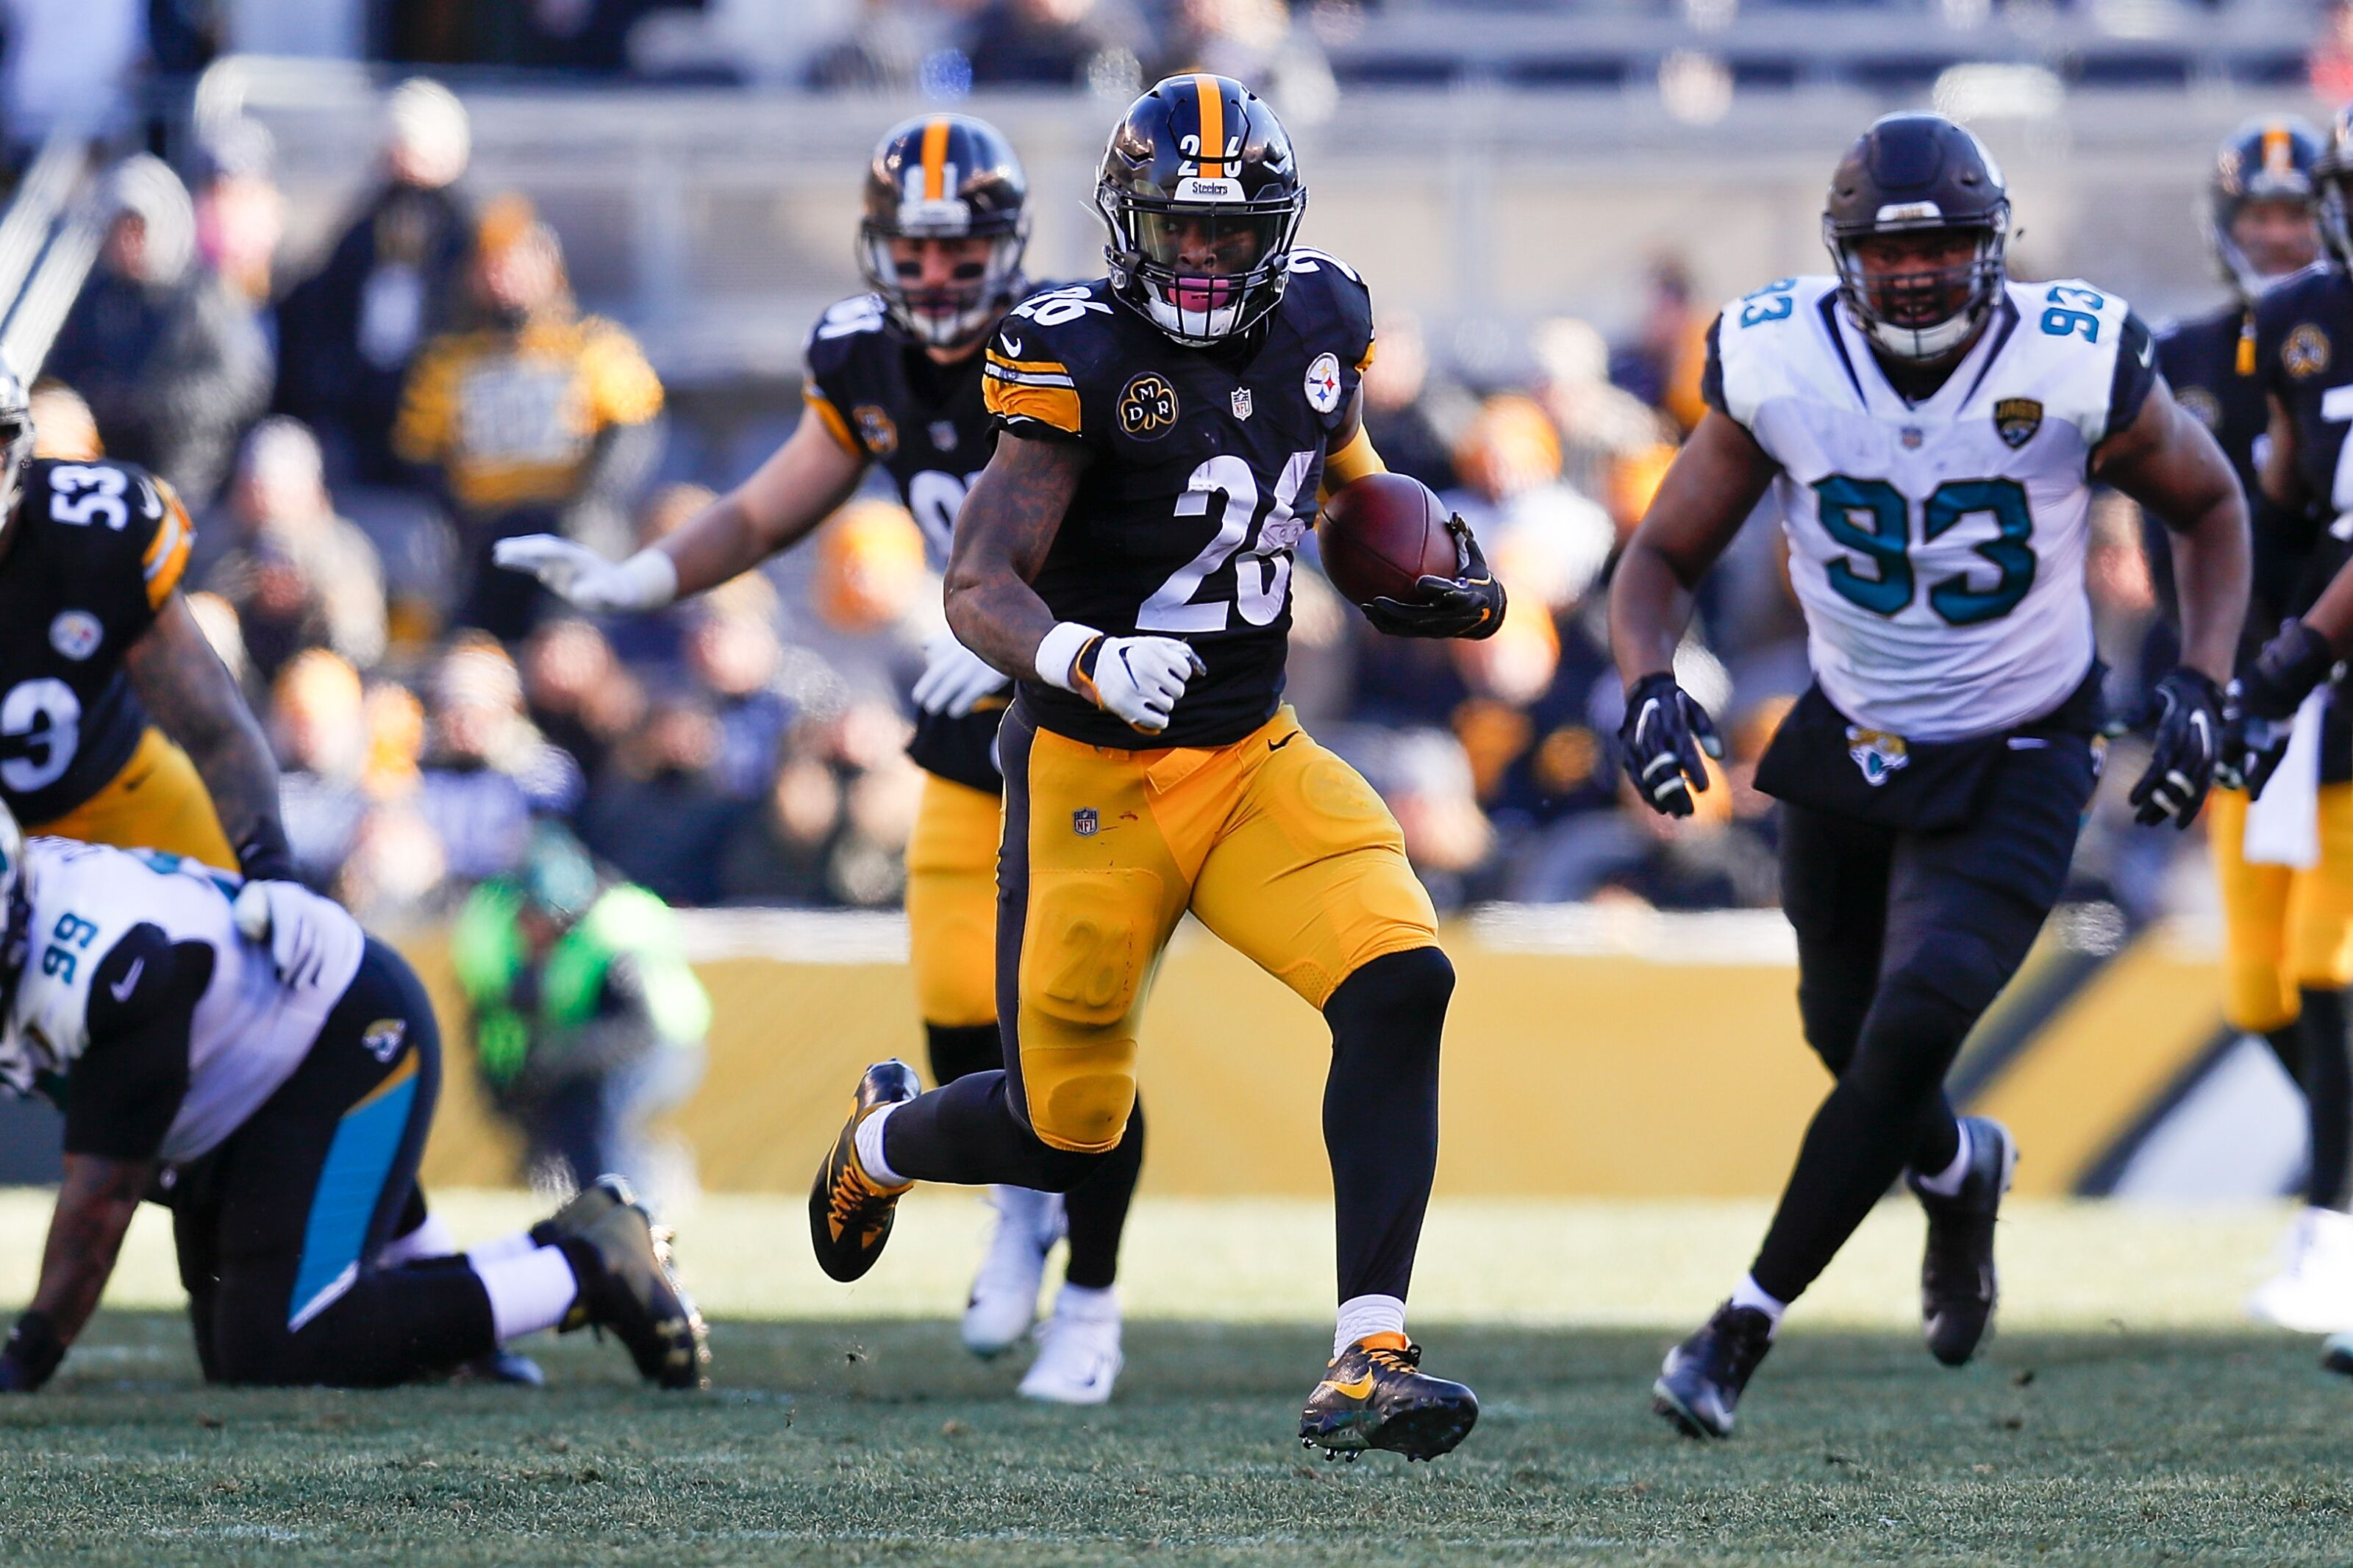 aaf41cc6b25 Packers free agency: Reasons for and against signing Le'Veon Bell